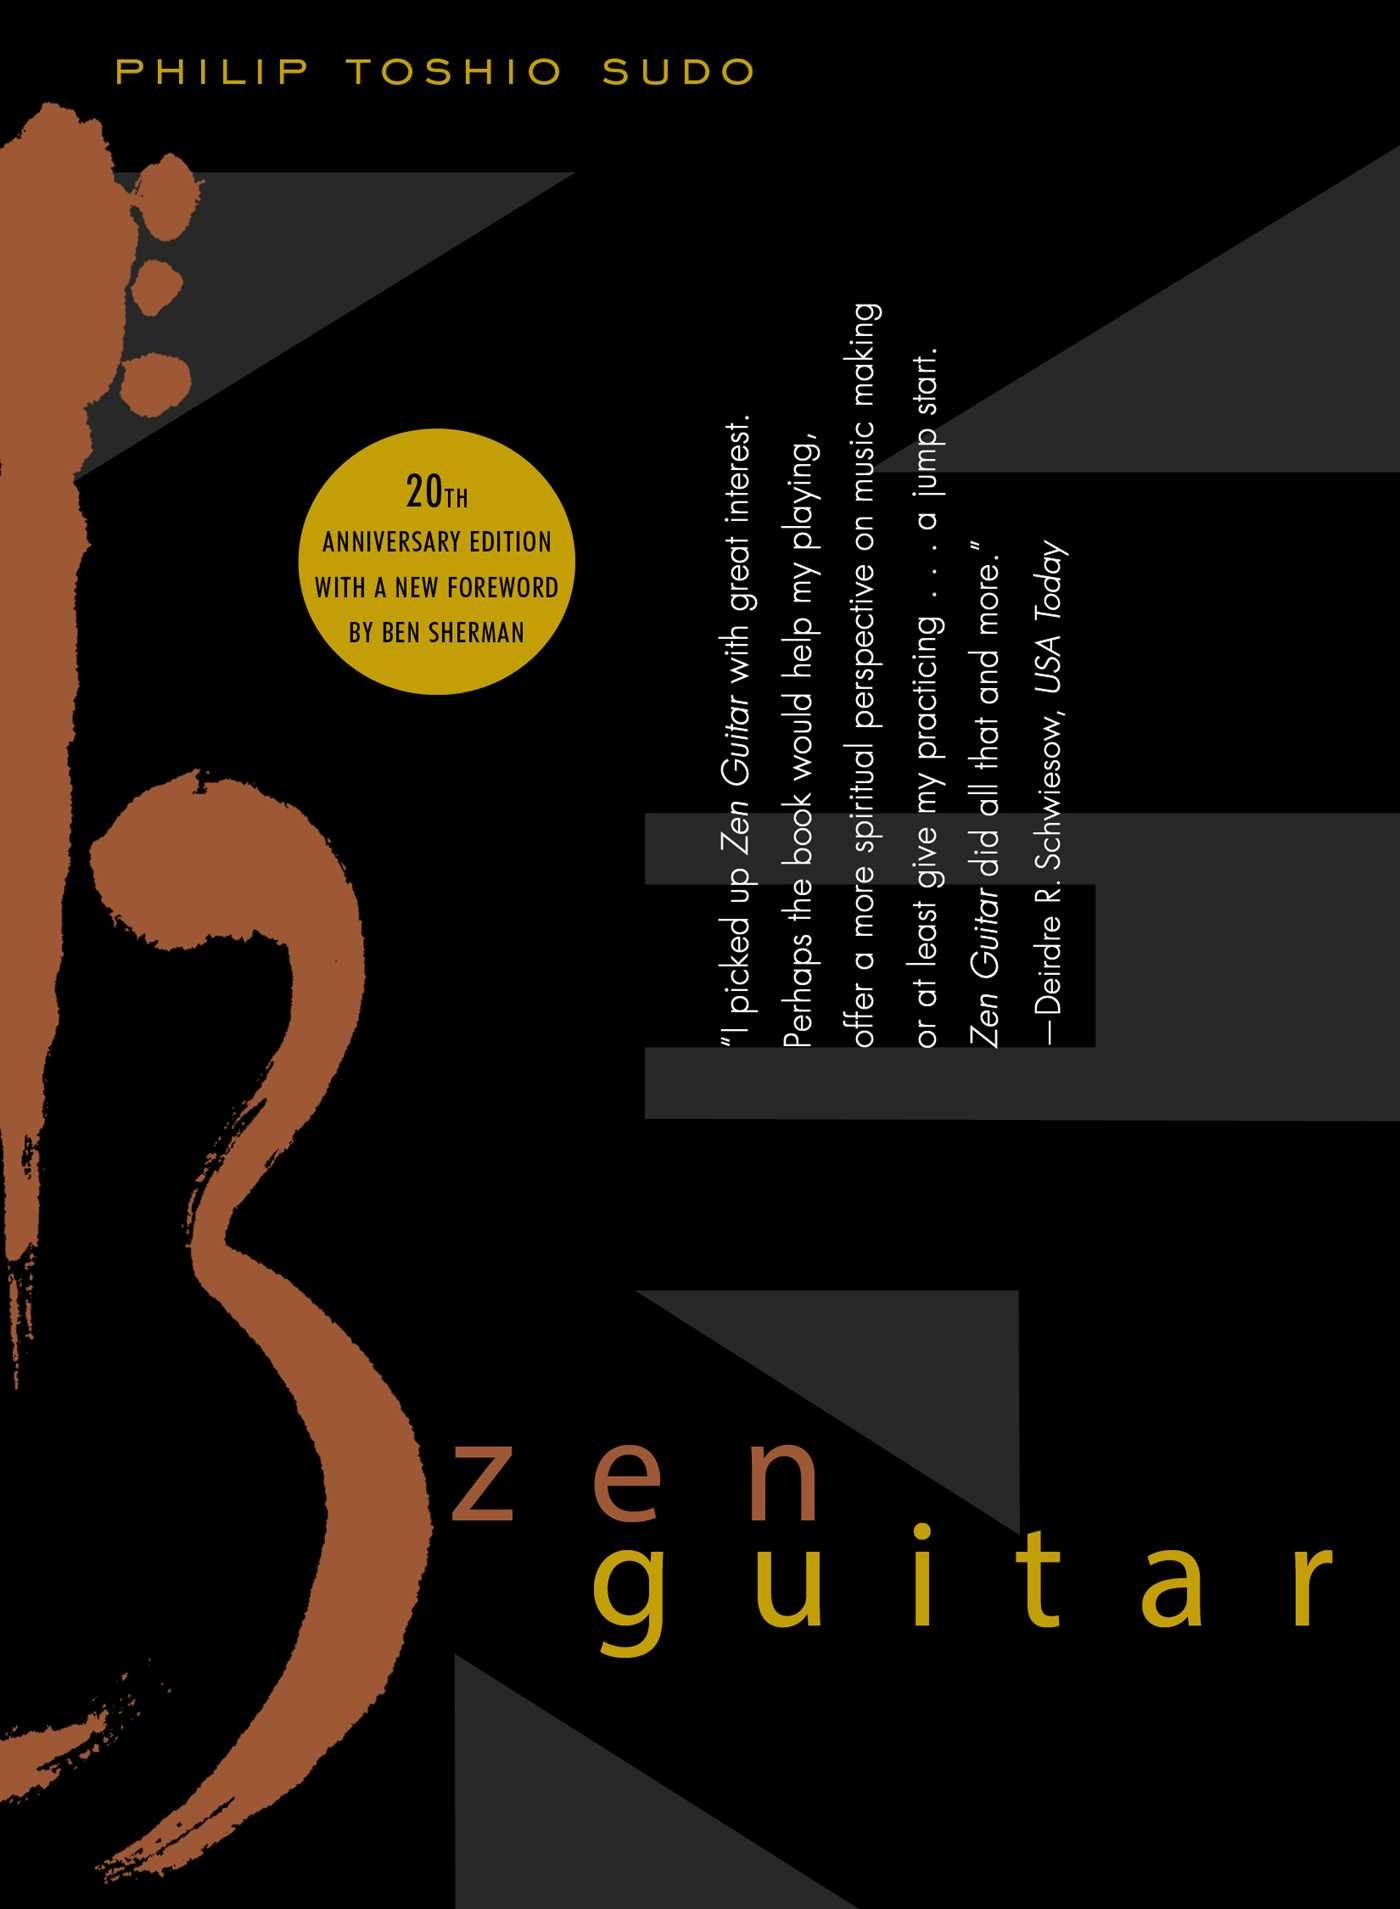 Zen Guitar Philip Toshio Sudo 9780684838779 Amazon Books